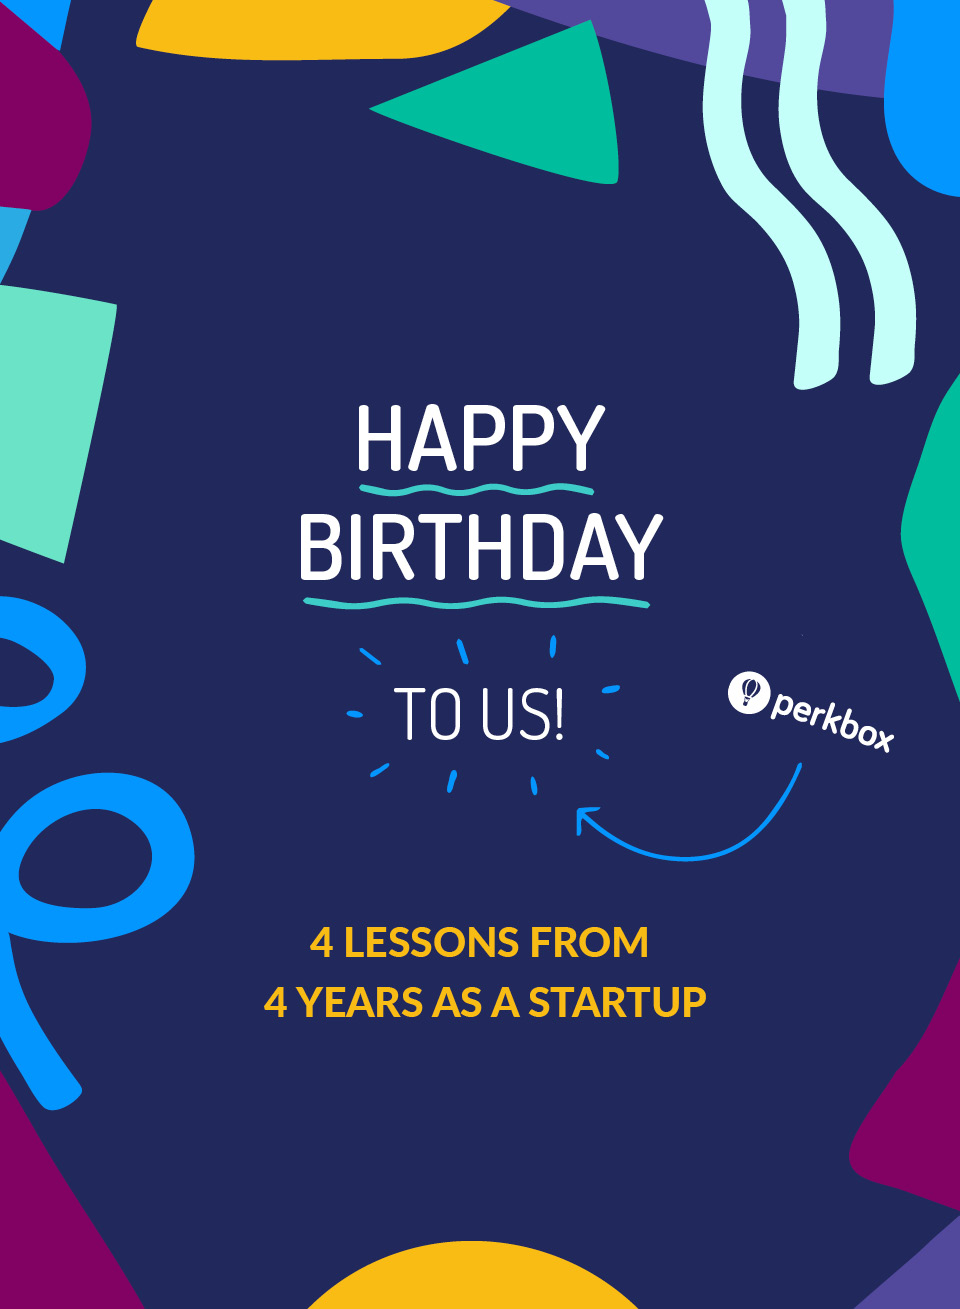 4 lessons from 4 years as a startup